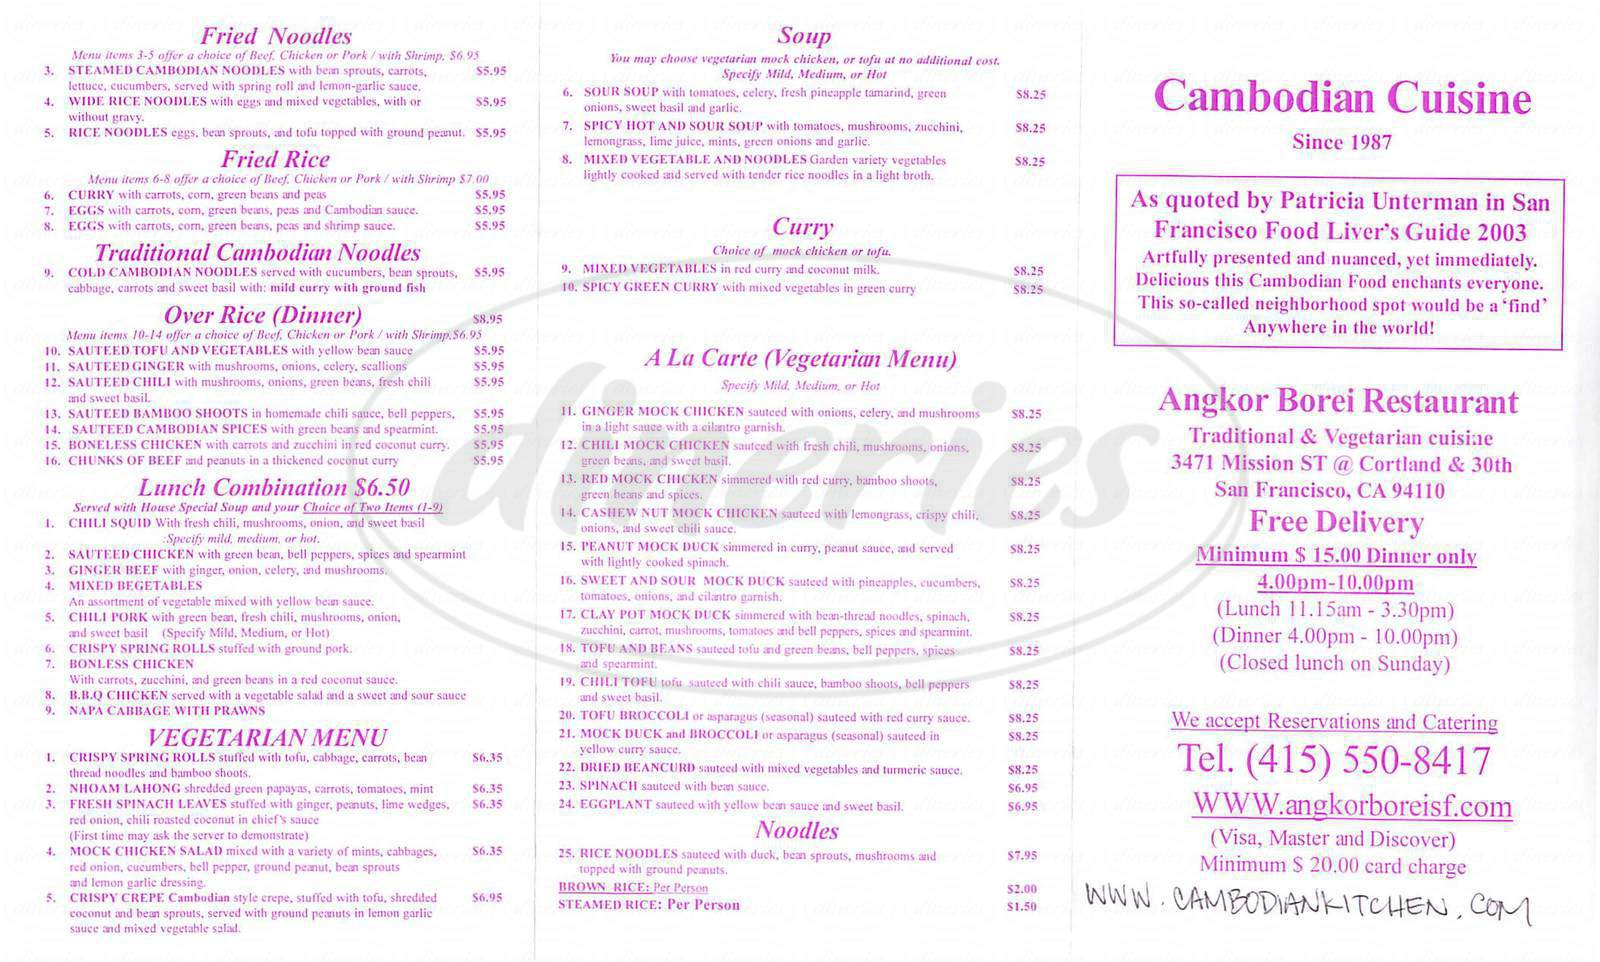 menu for Angkor Borei Restaurant